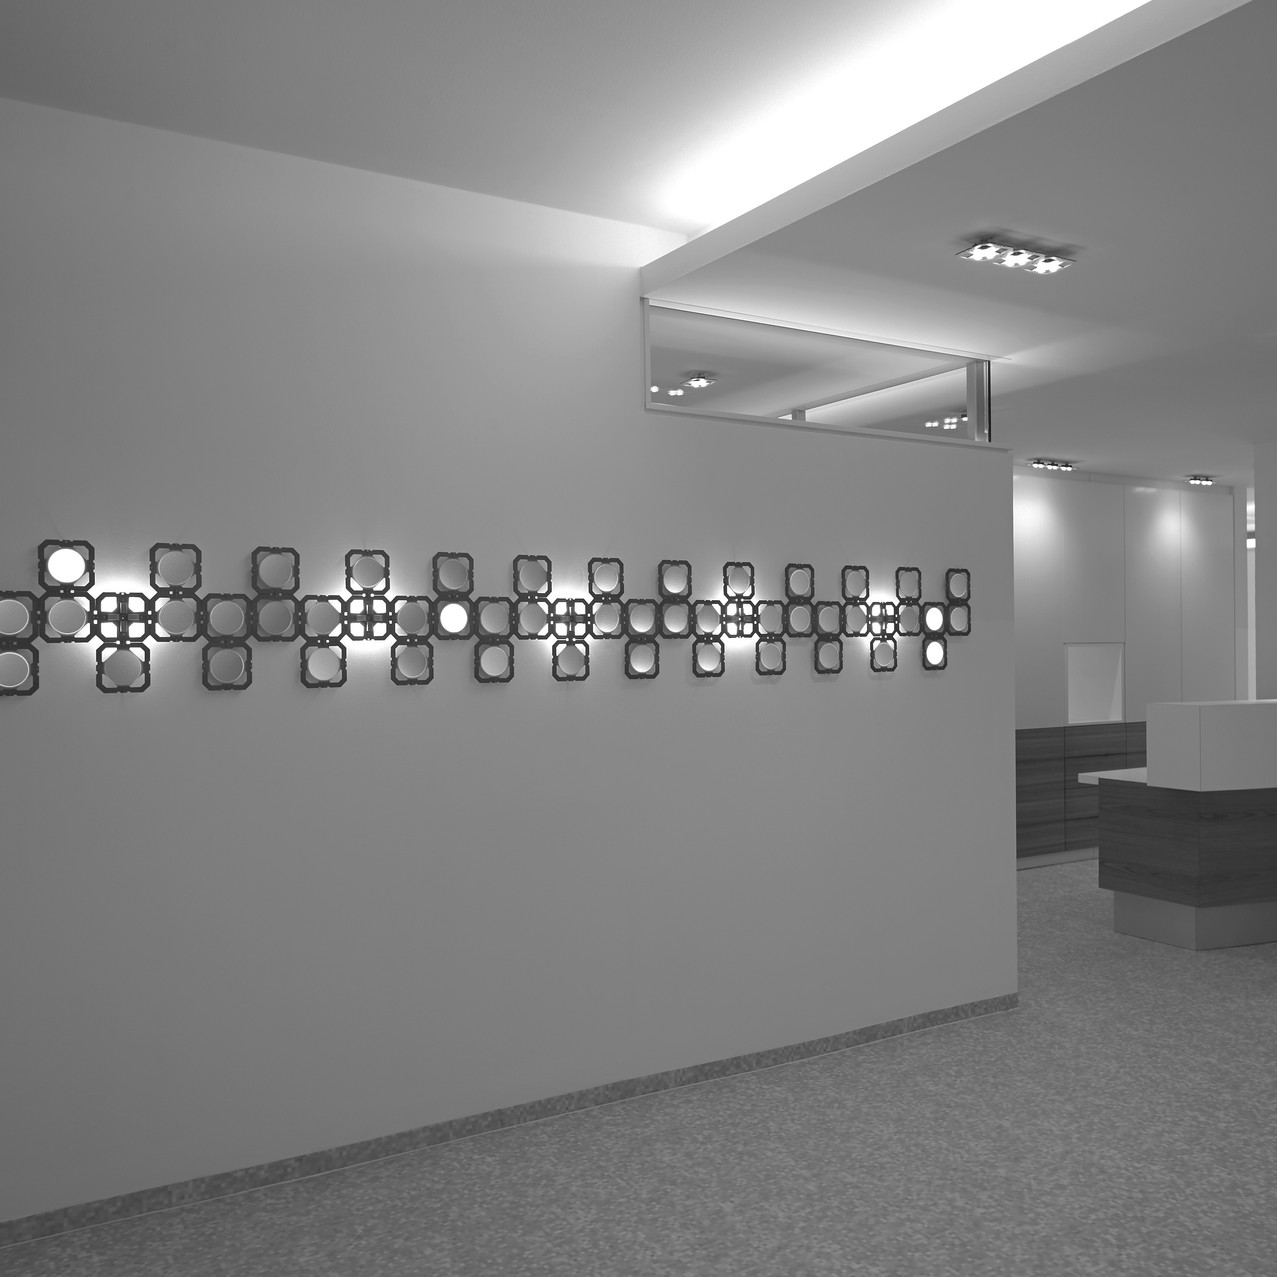 LED_OLED_Installation_Foto_Andreas_Reitersw3Stückan